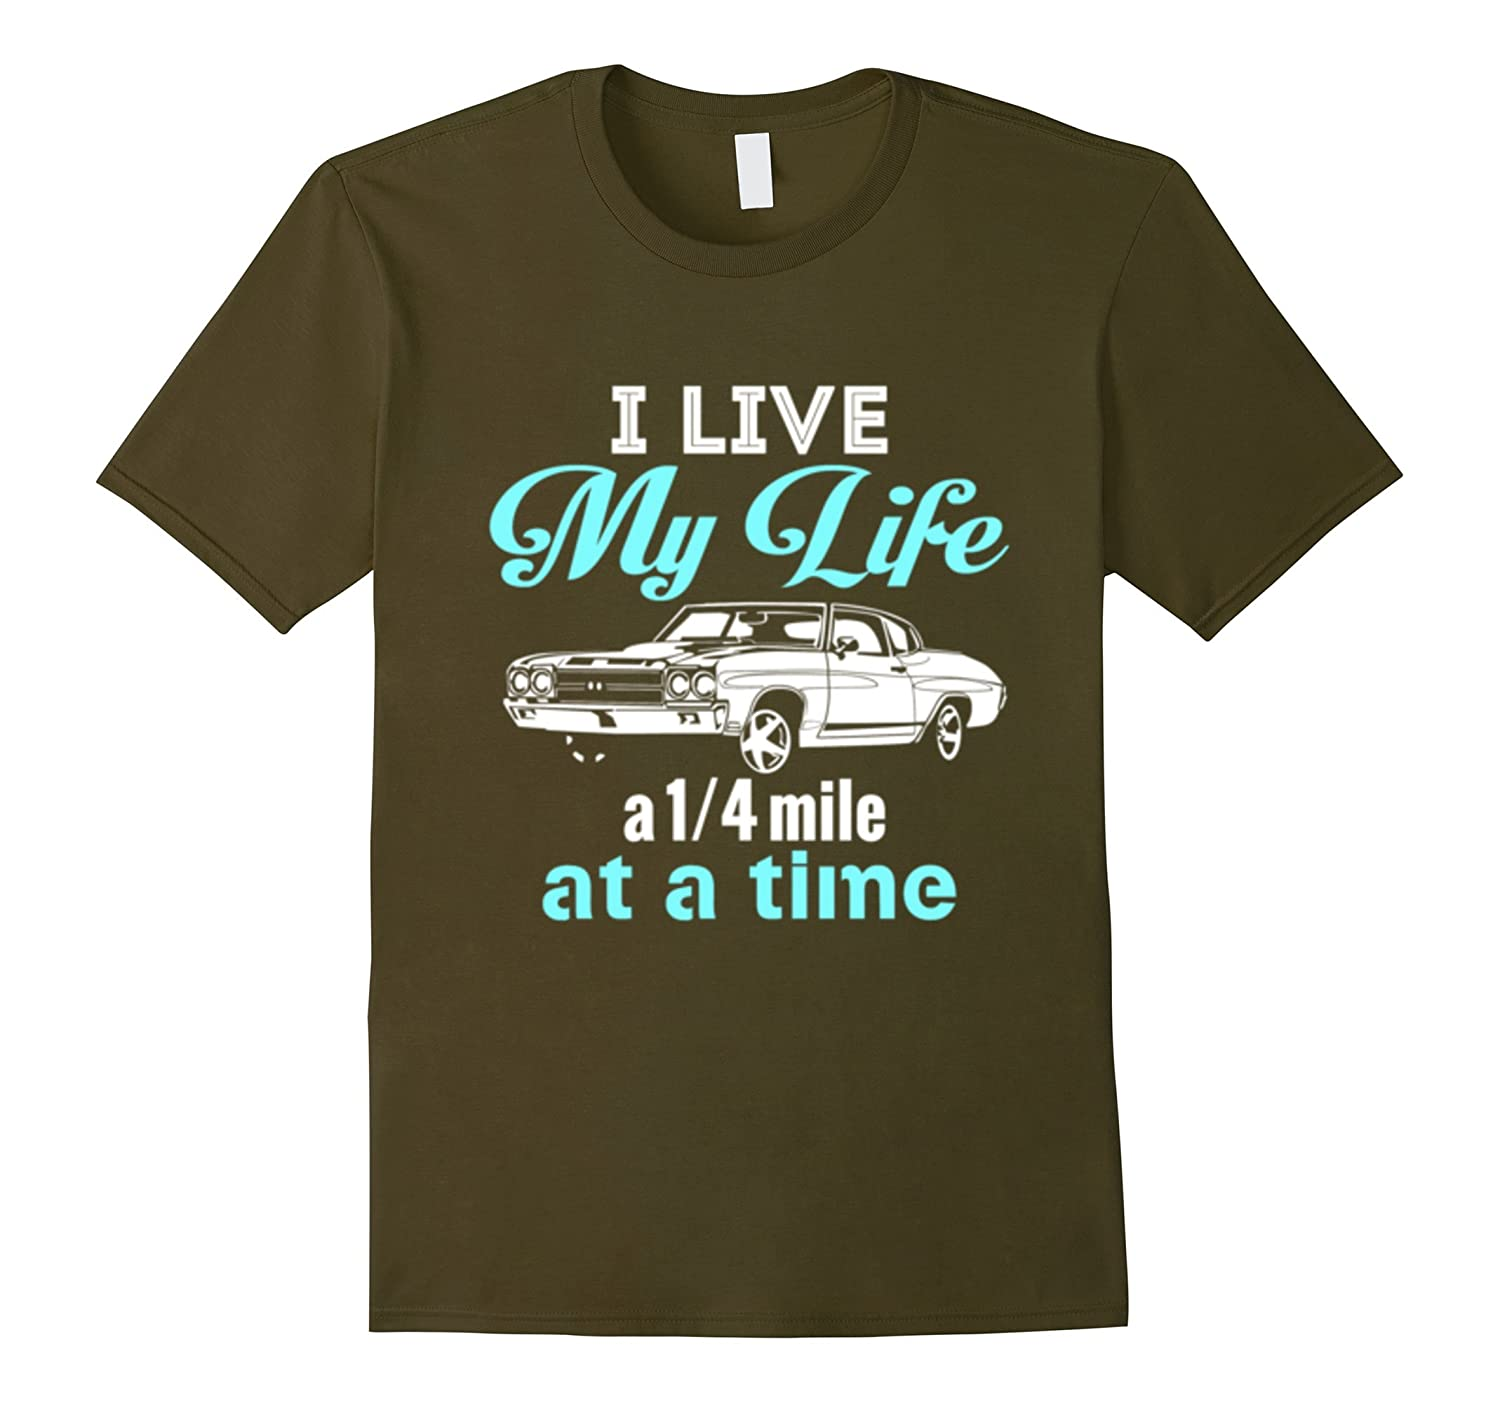 i live my life a quarter mile at a time shirt - photo #7